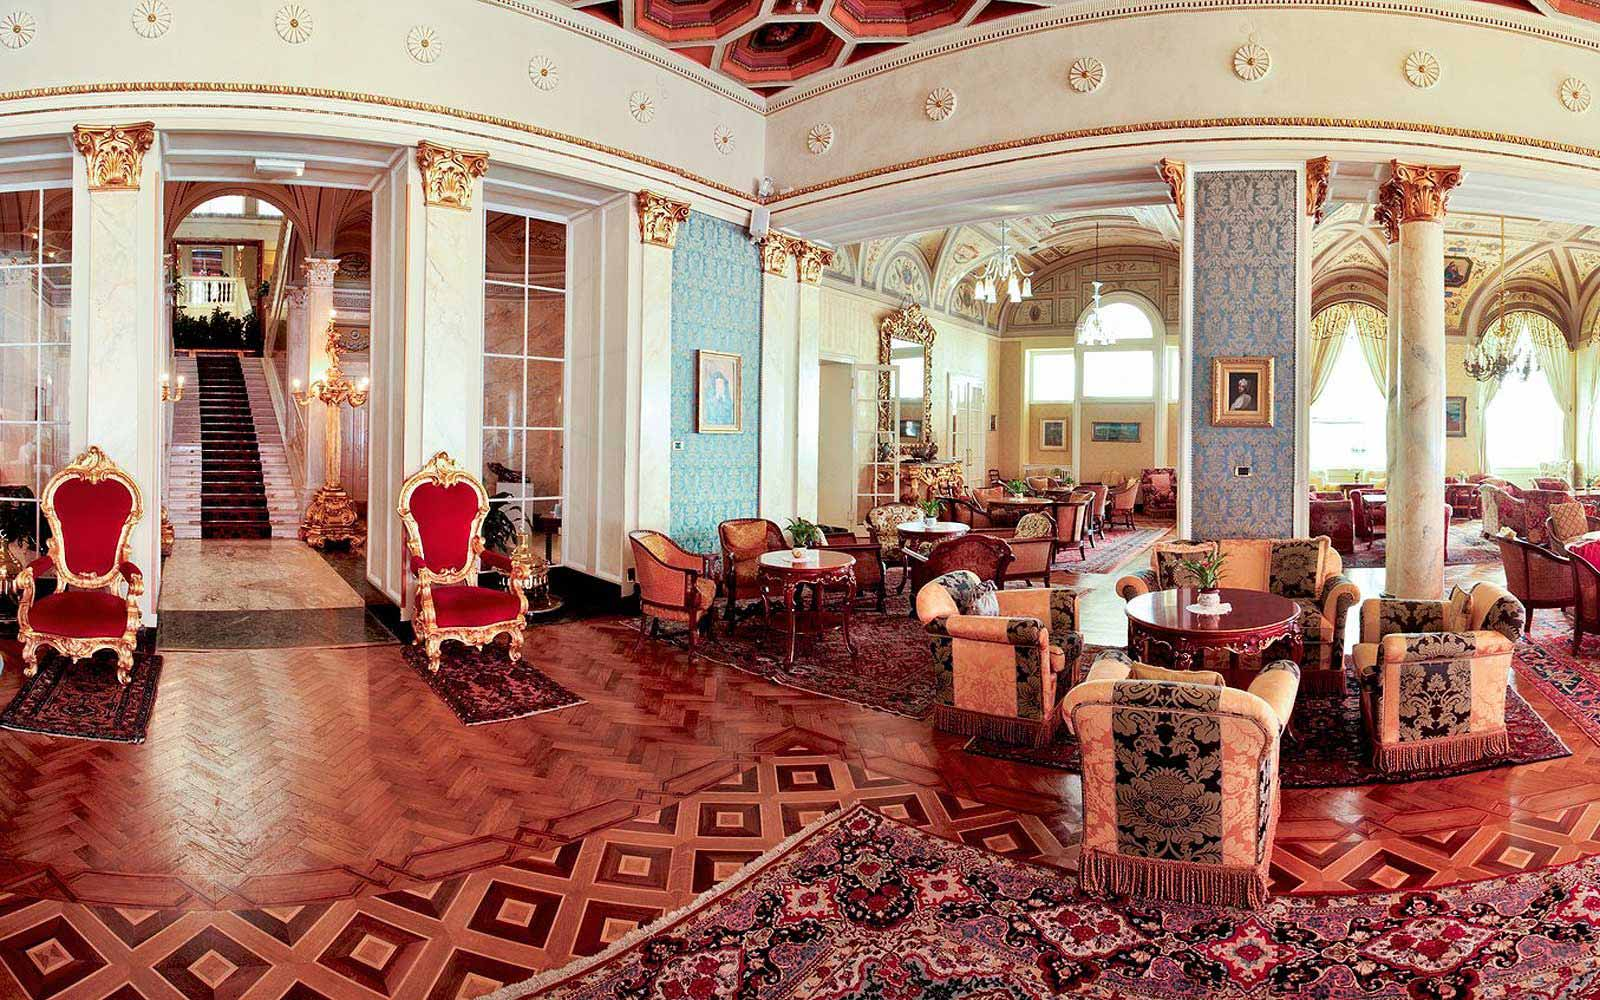 A hall at Grand Hotel Villa Serbelloni